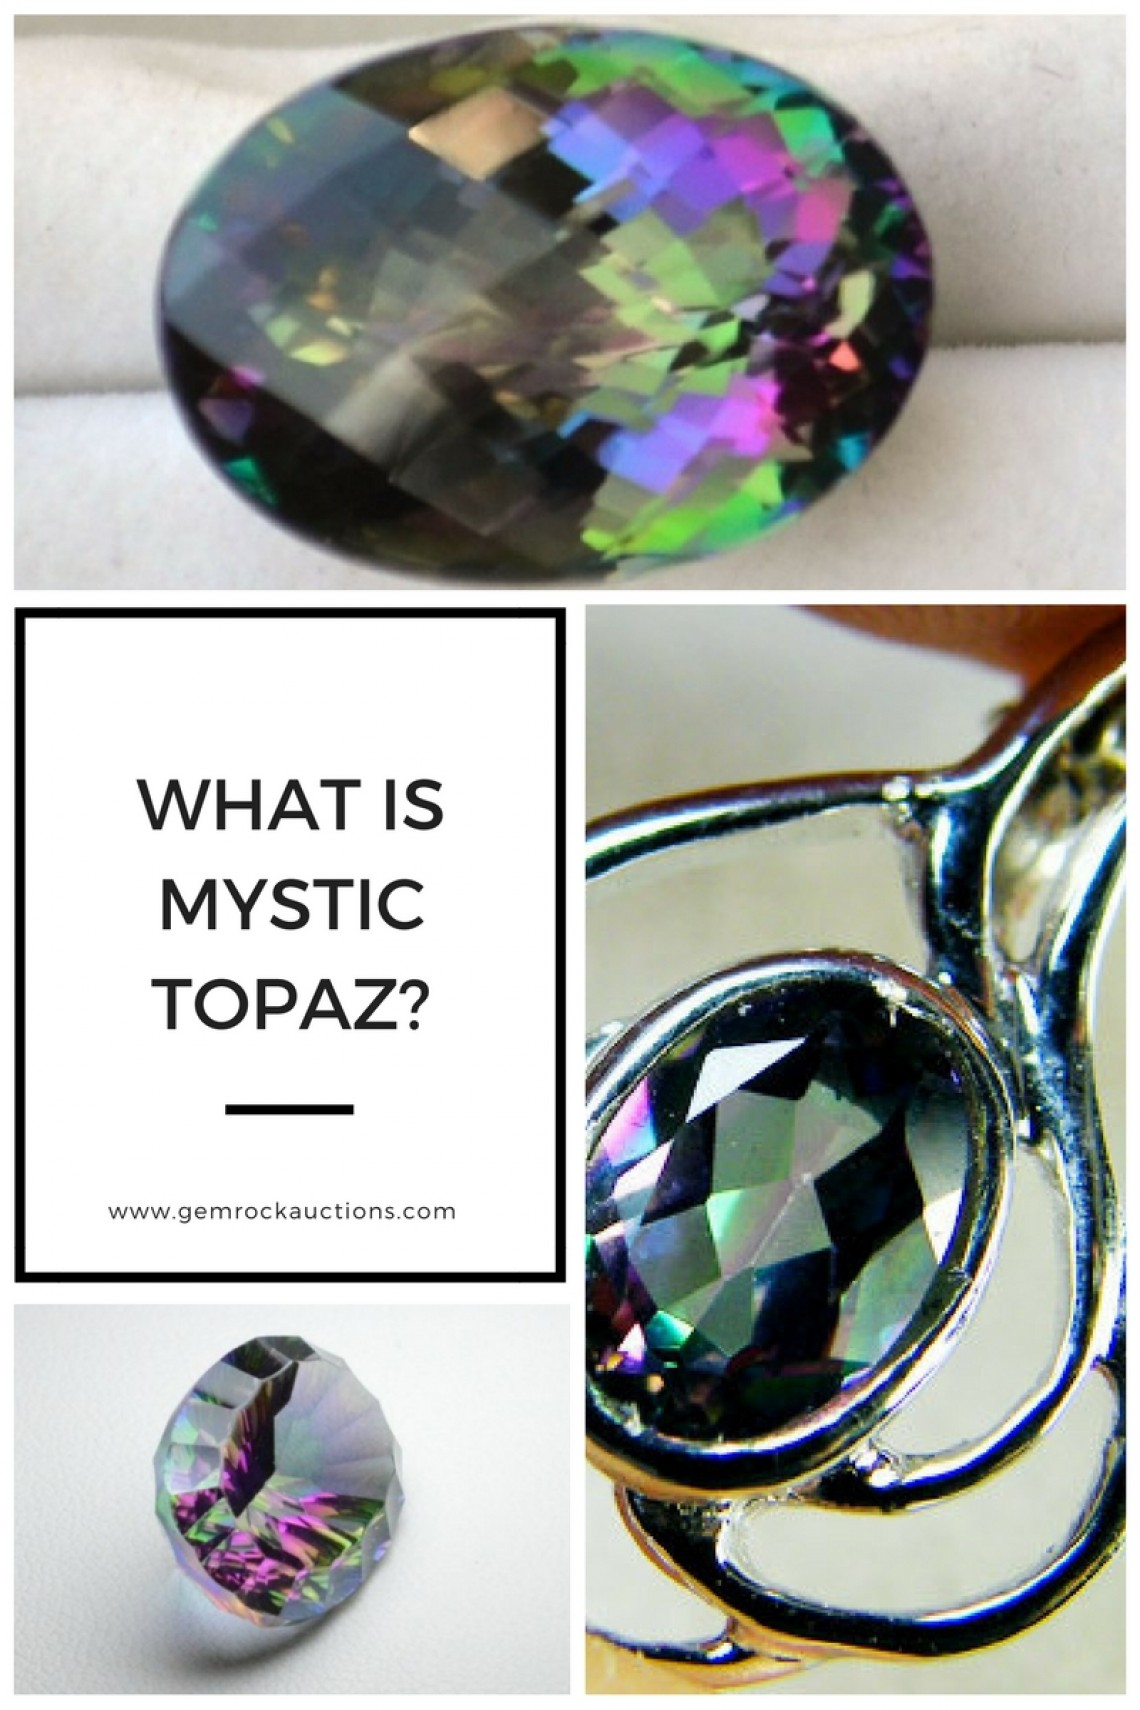 What is mystic topaz